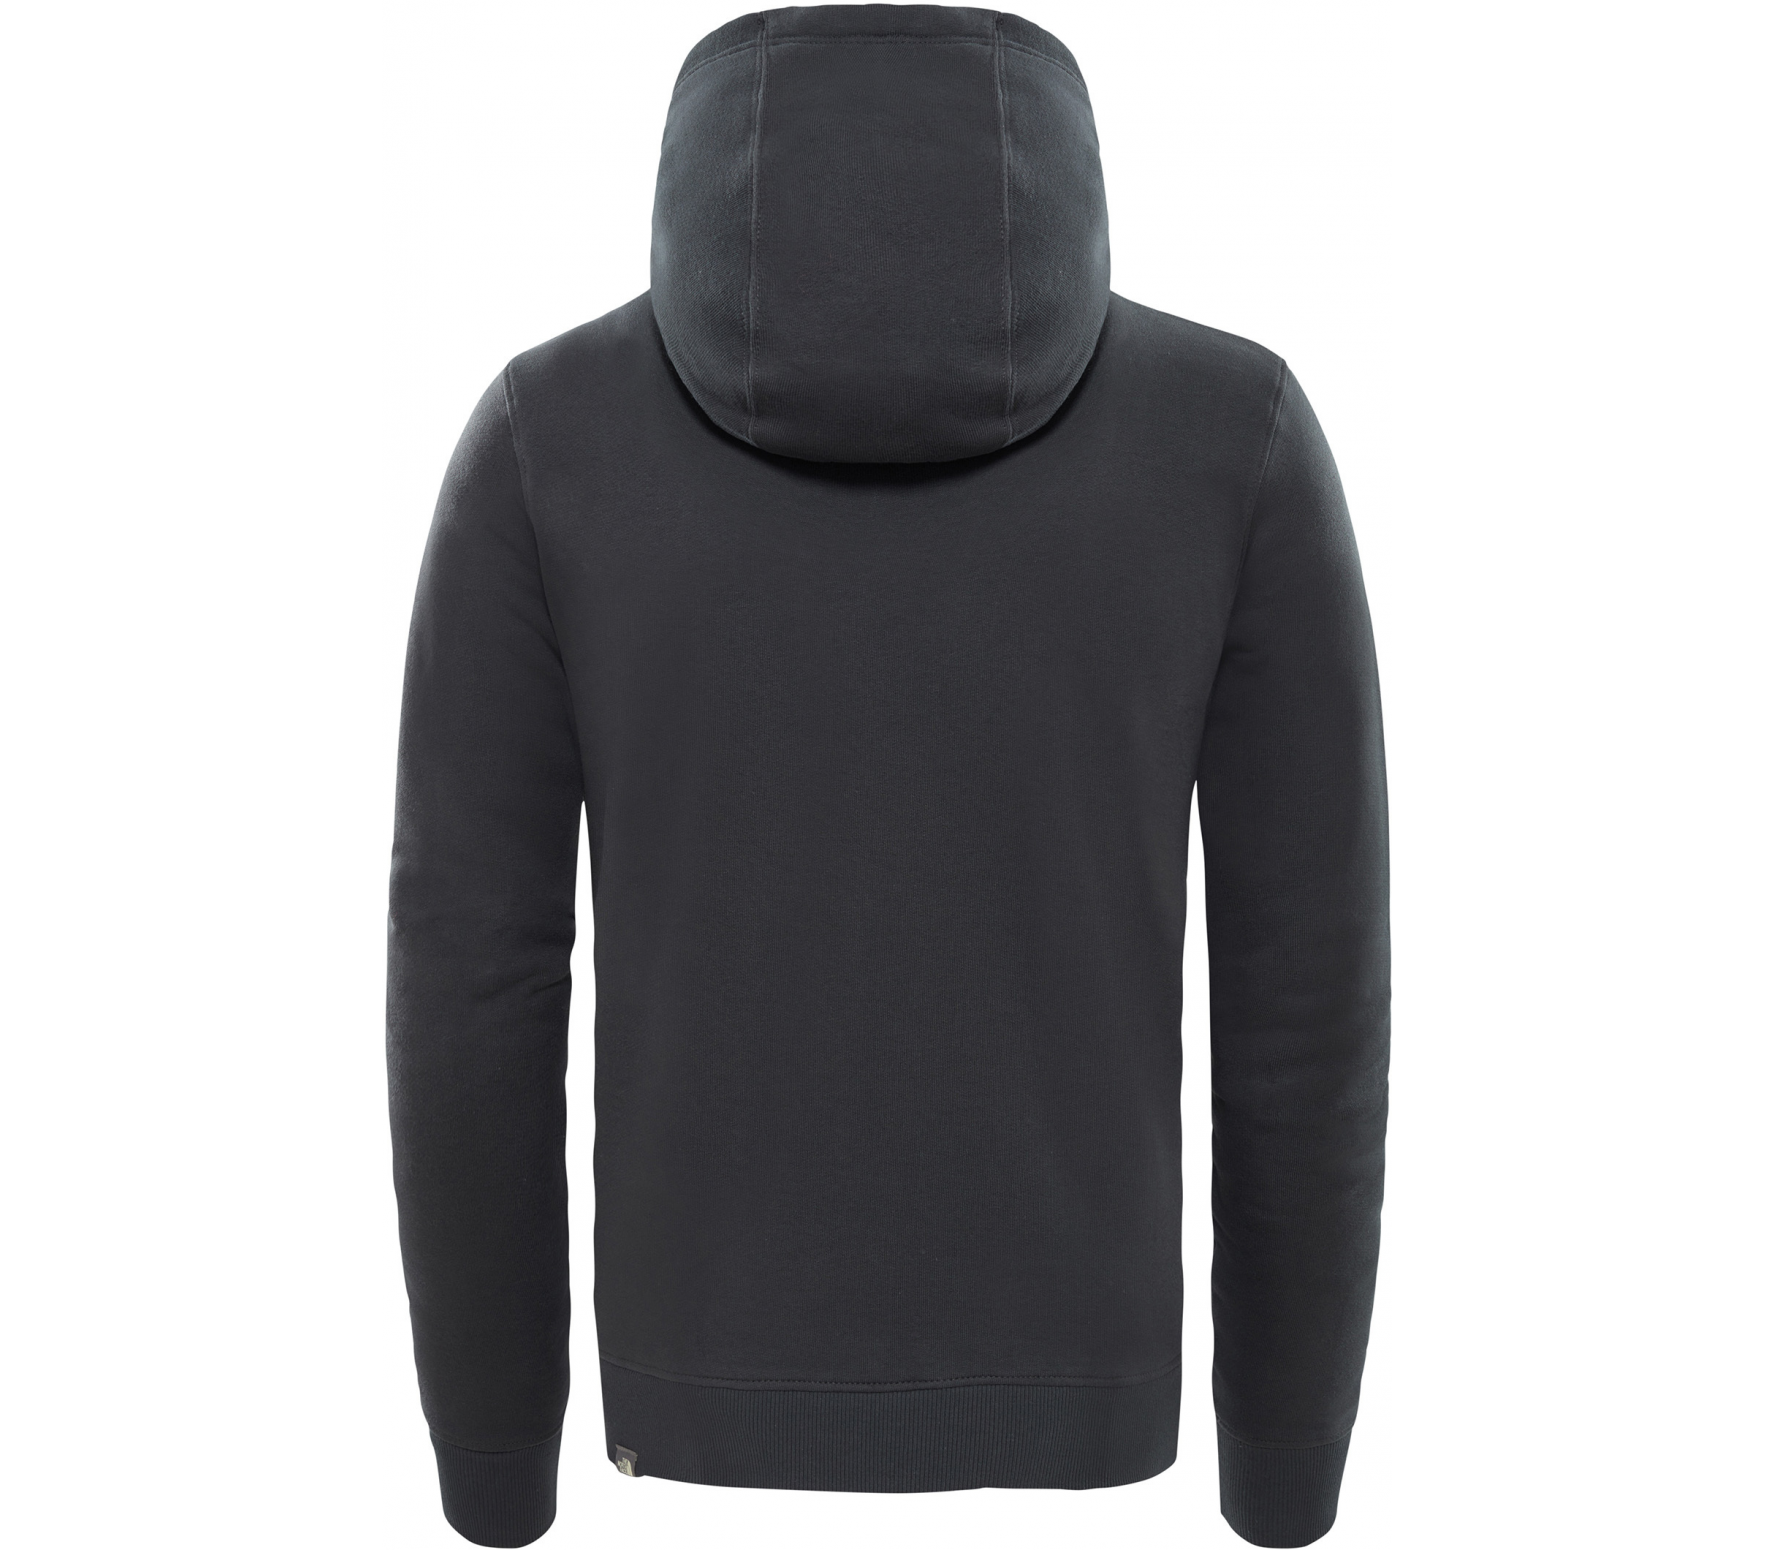 58d5e2bdd555 The North Face - Drew Peak Herren Hoodie (grau) im Online Shop von ...